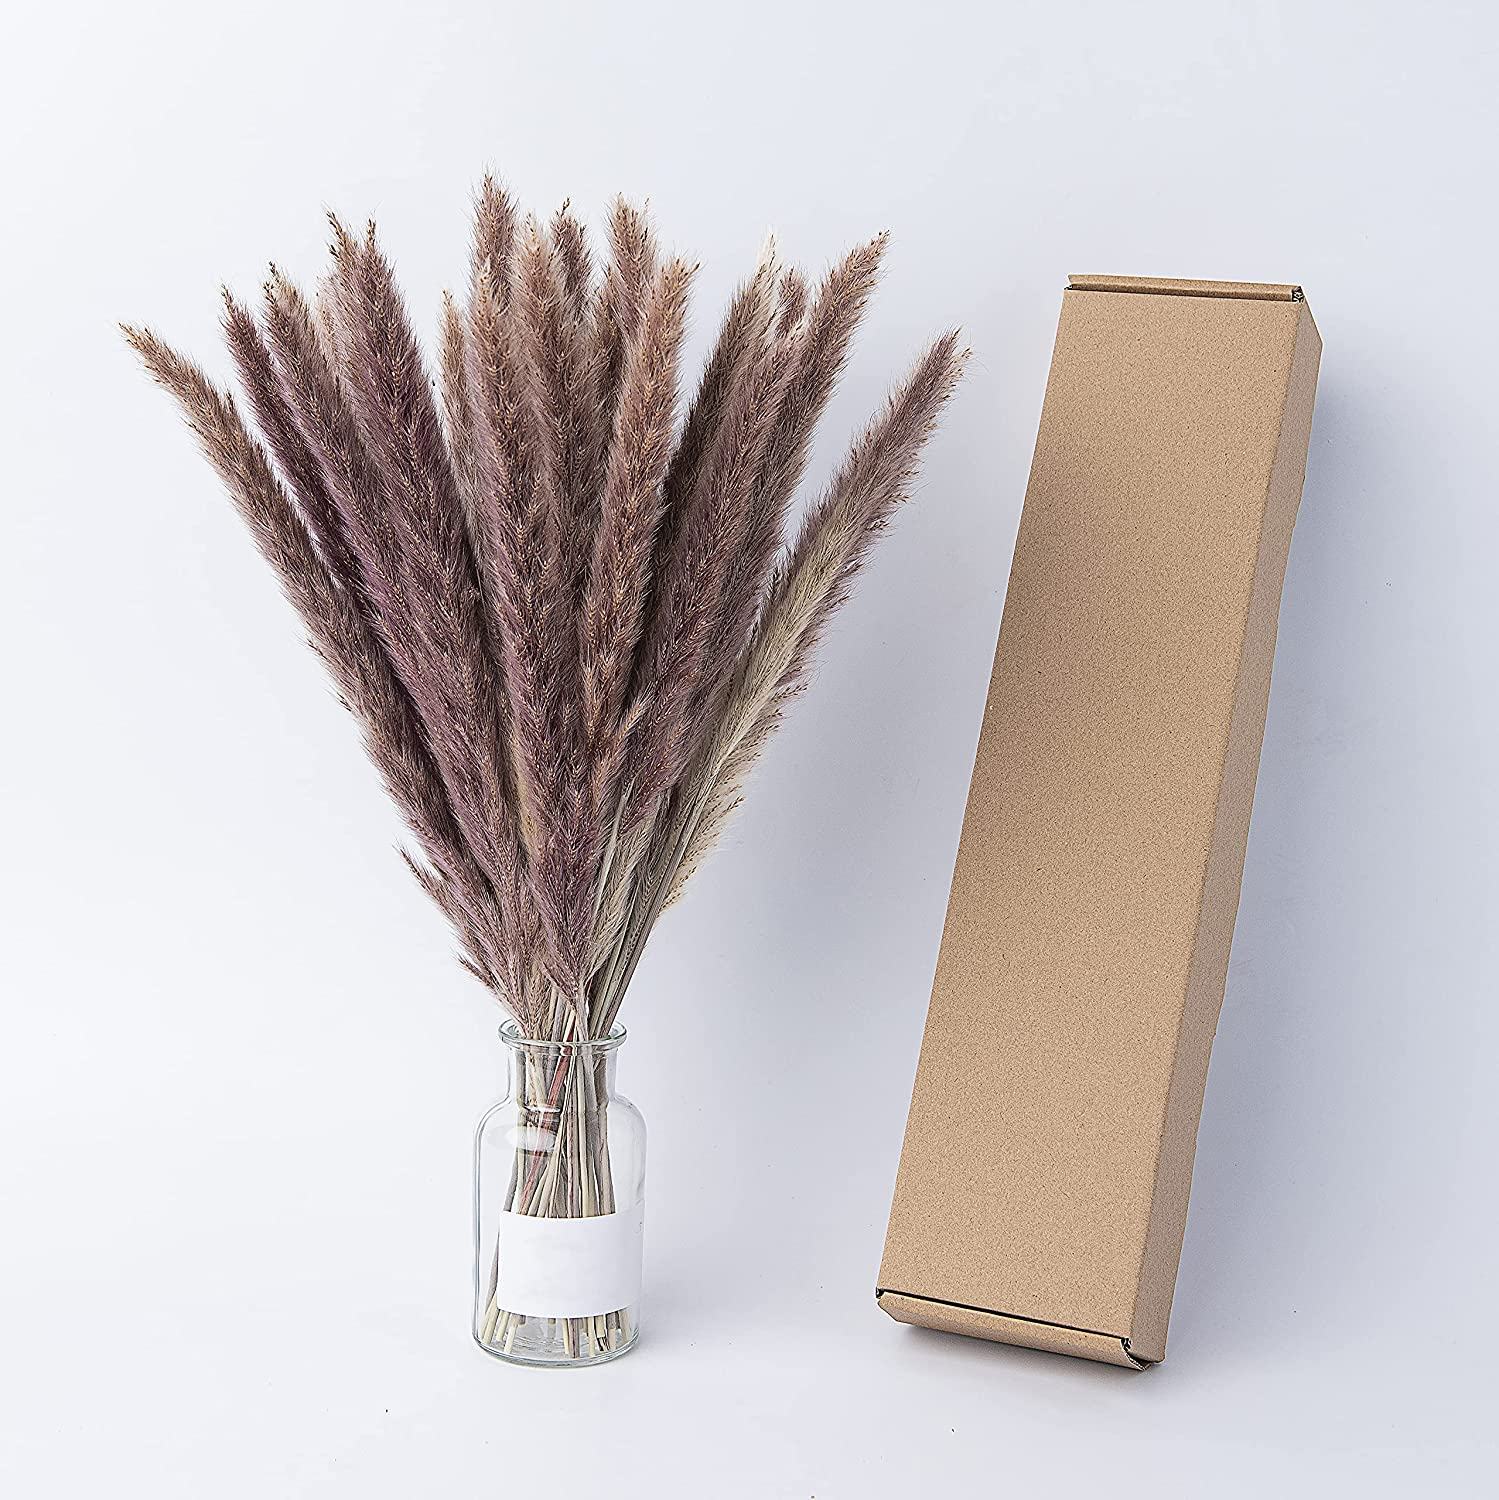 Buy 20 Pcs Natural Dried Pampas Grass, Soft and Fluffy, No Stench ...